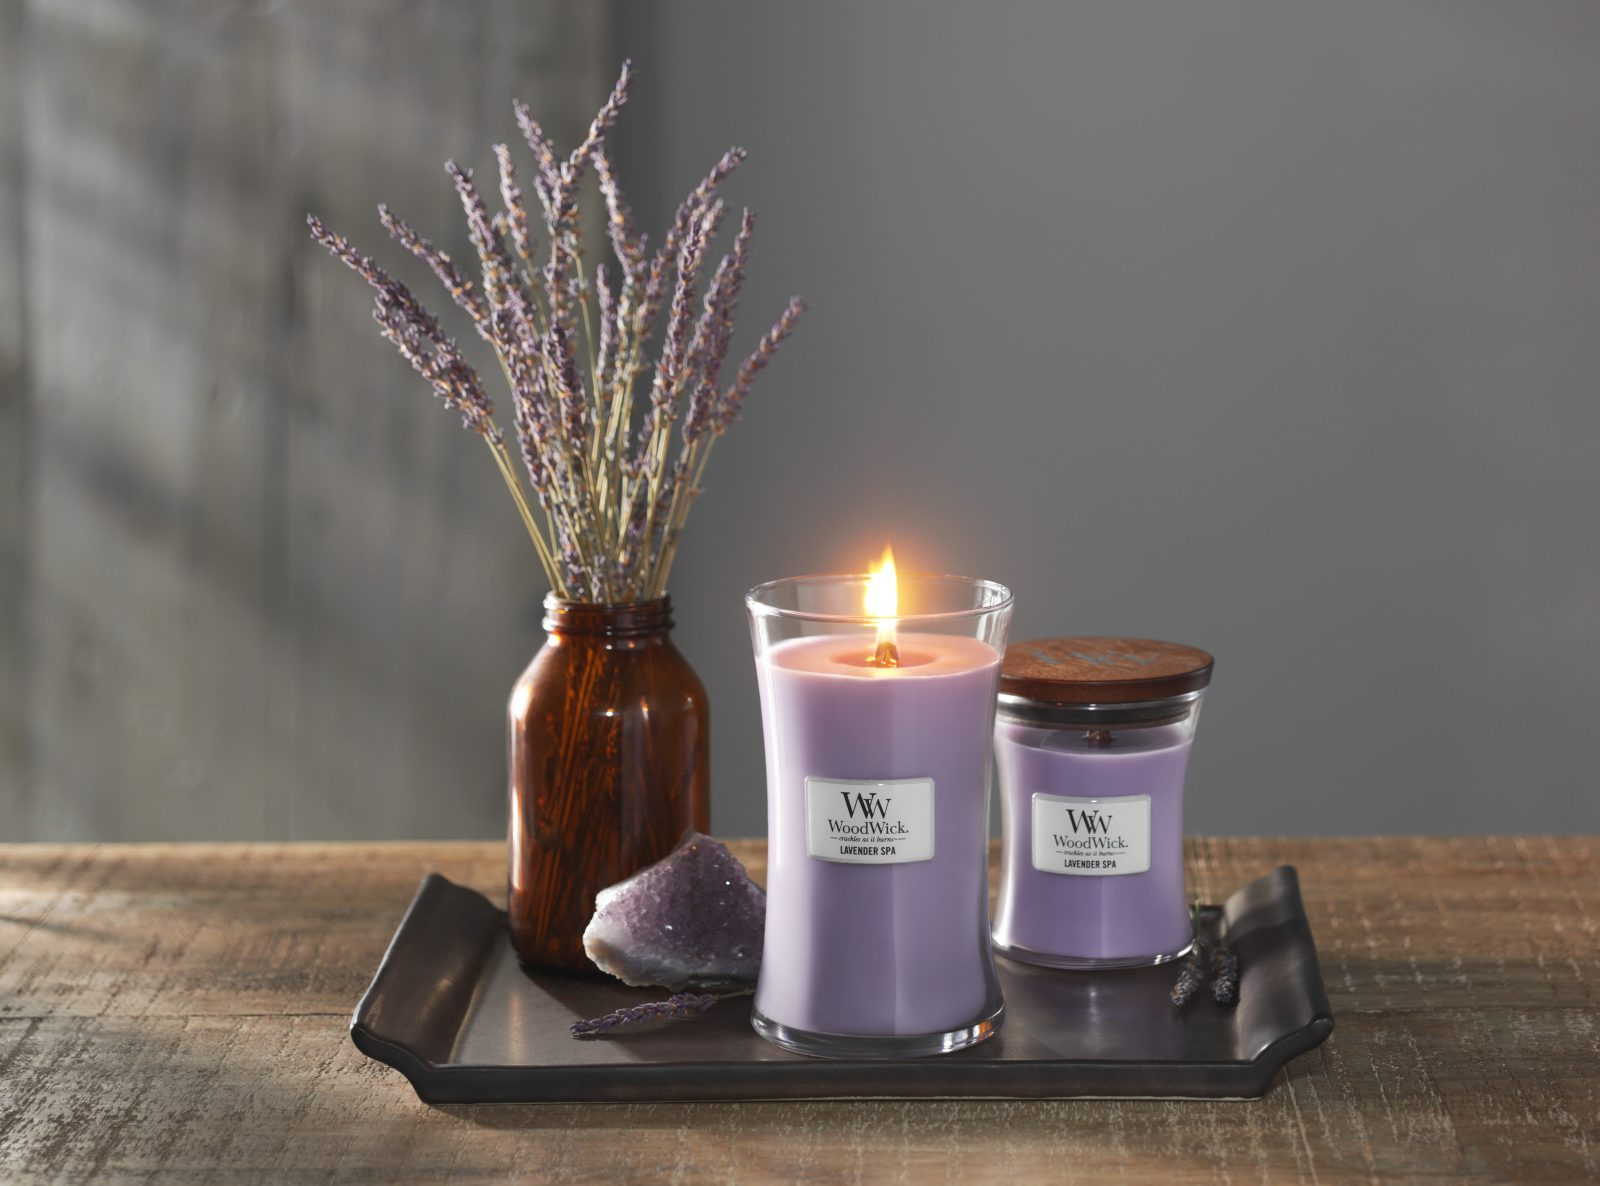 Up to 50% off on WoodWick Candles